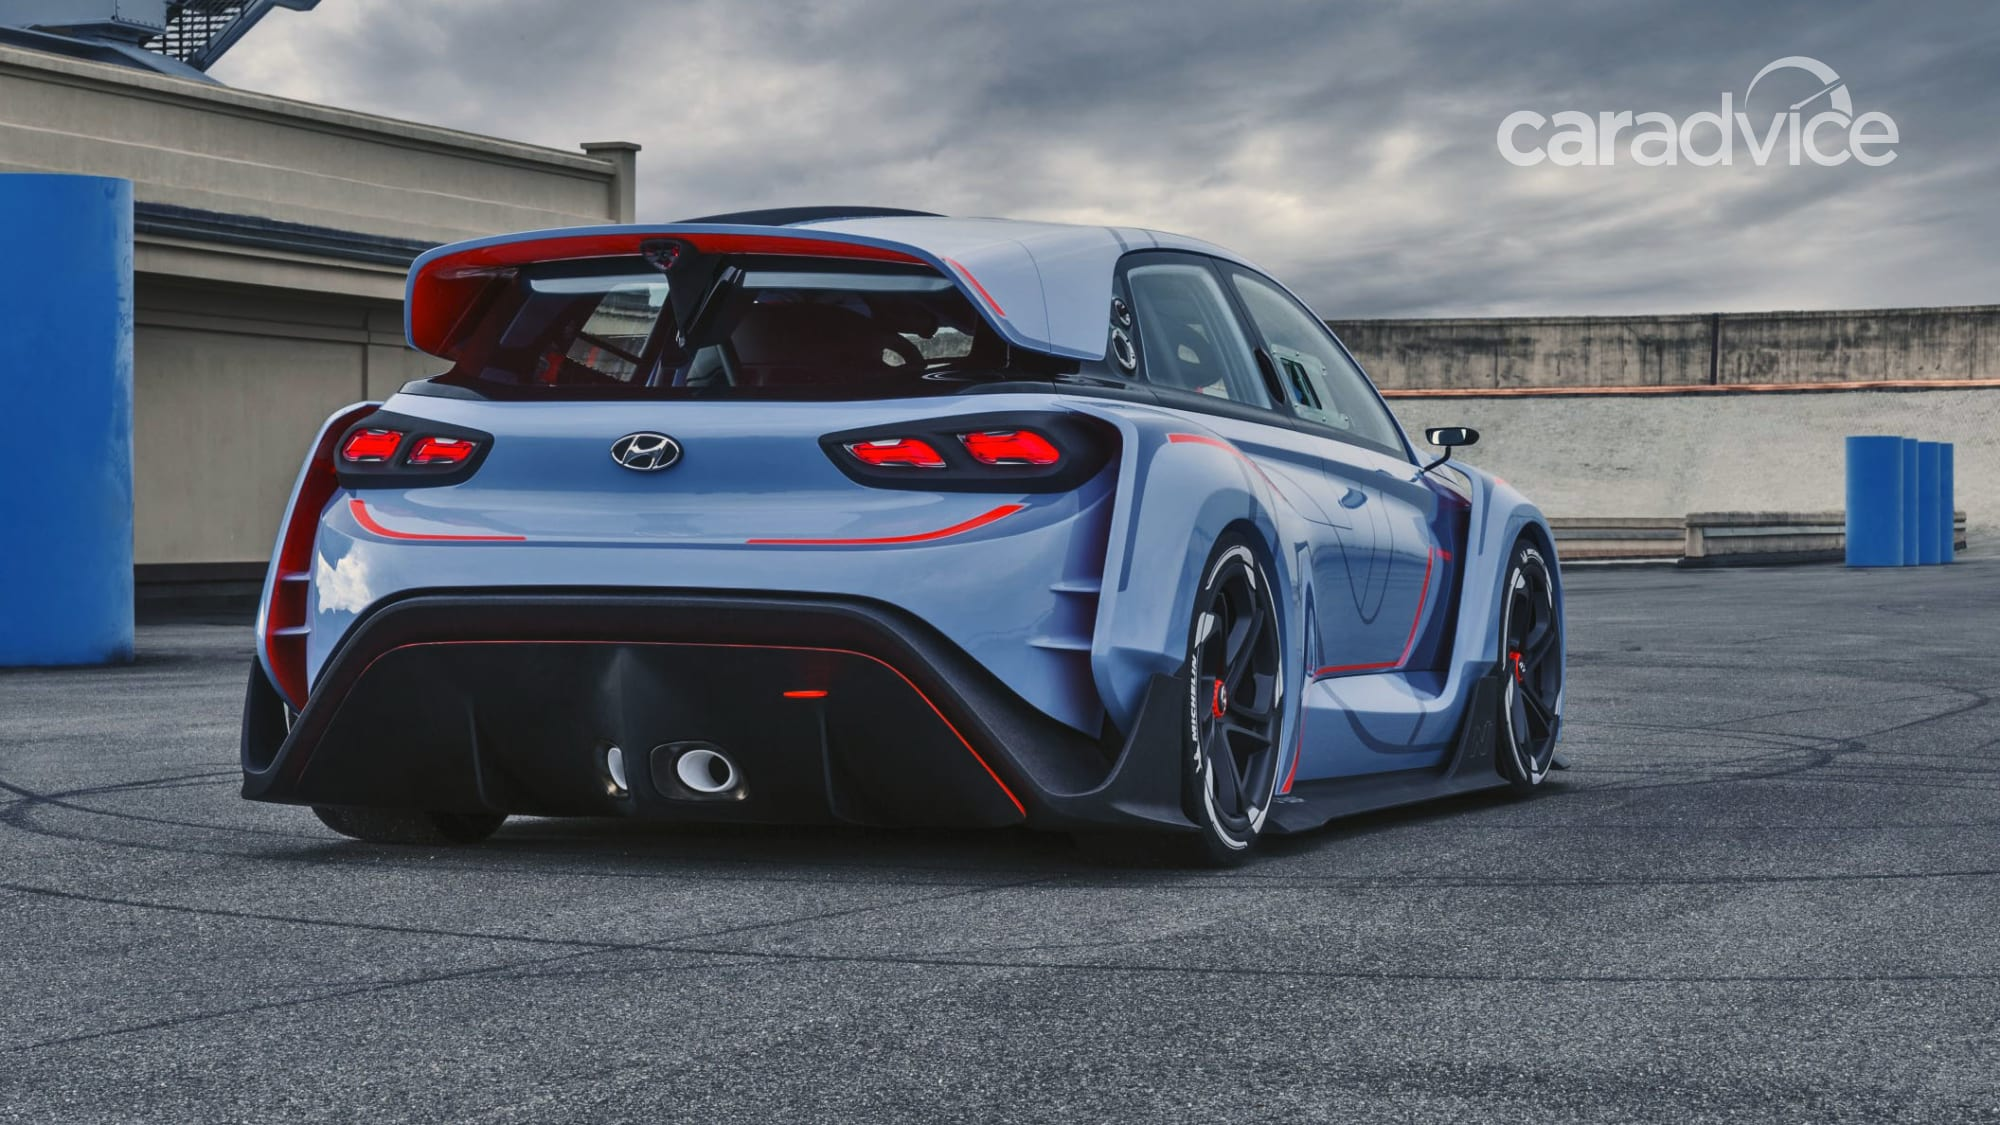 hyundai rn30 high performance concept revealed i30 n preview debuts in paris caradvice